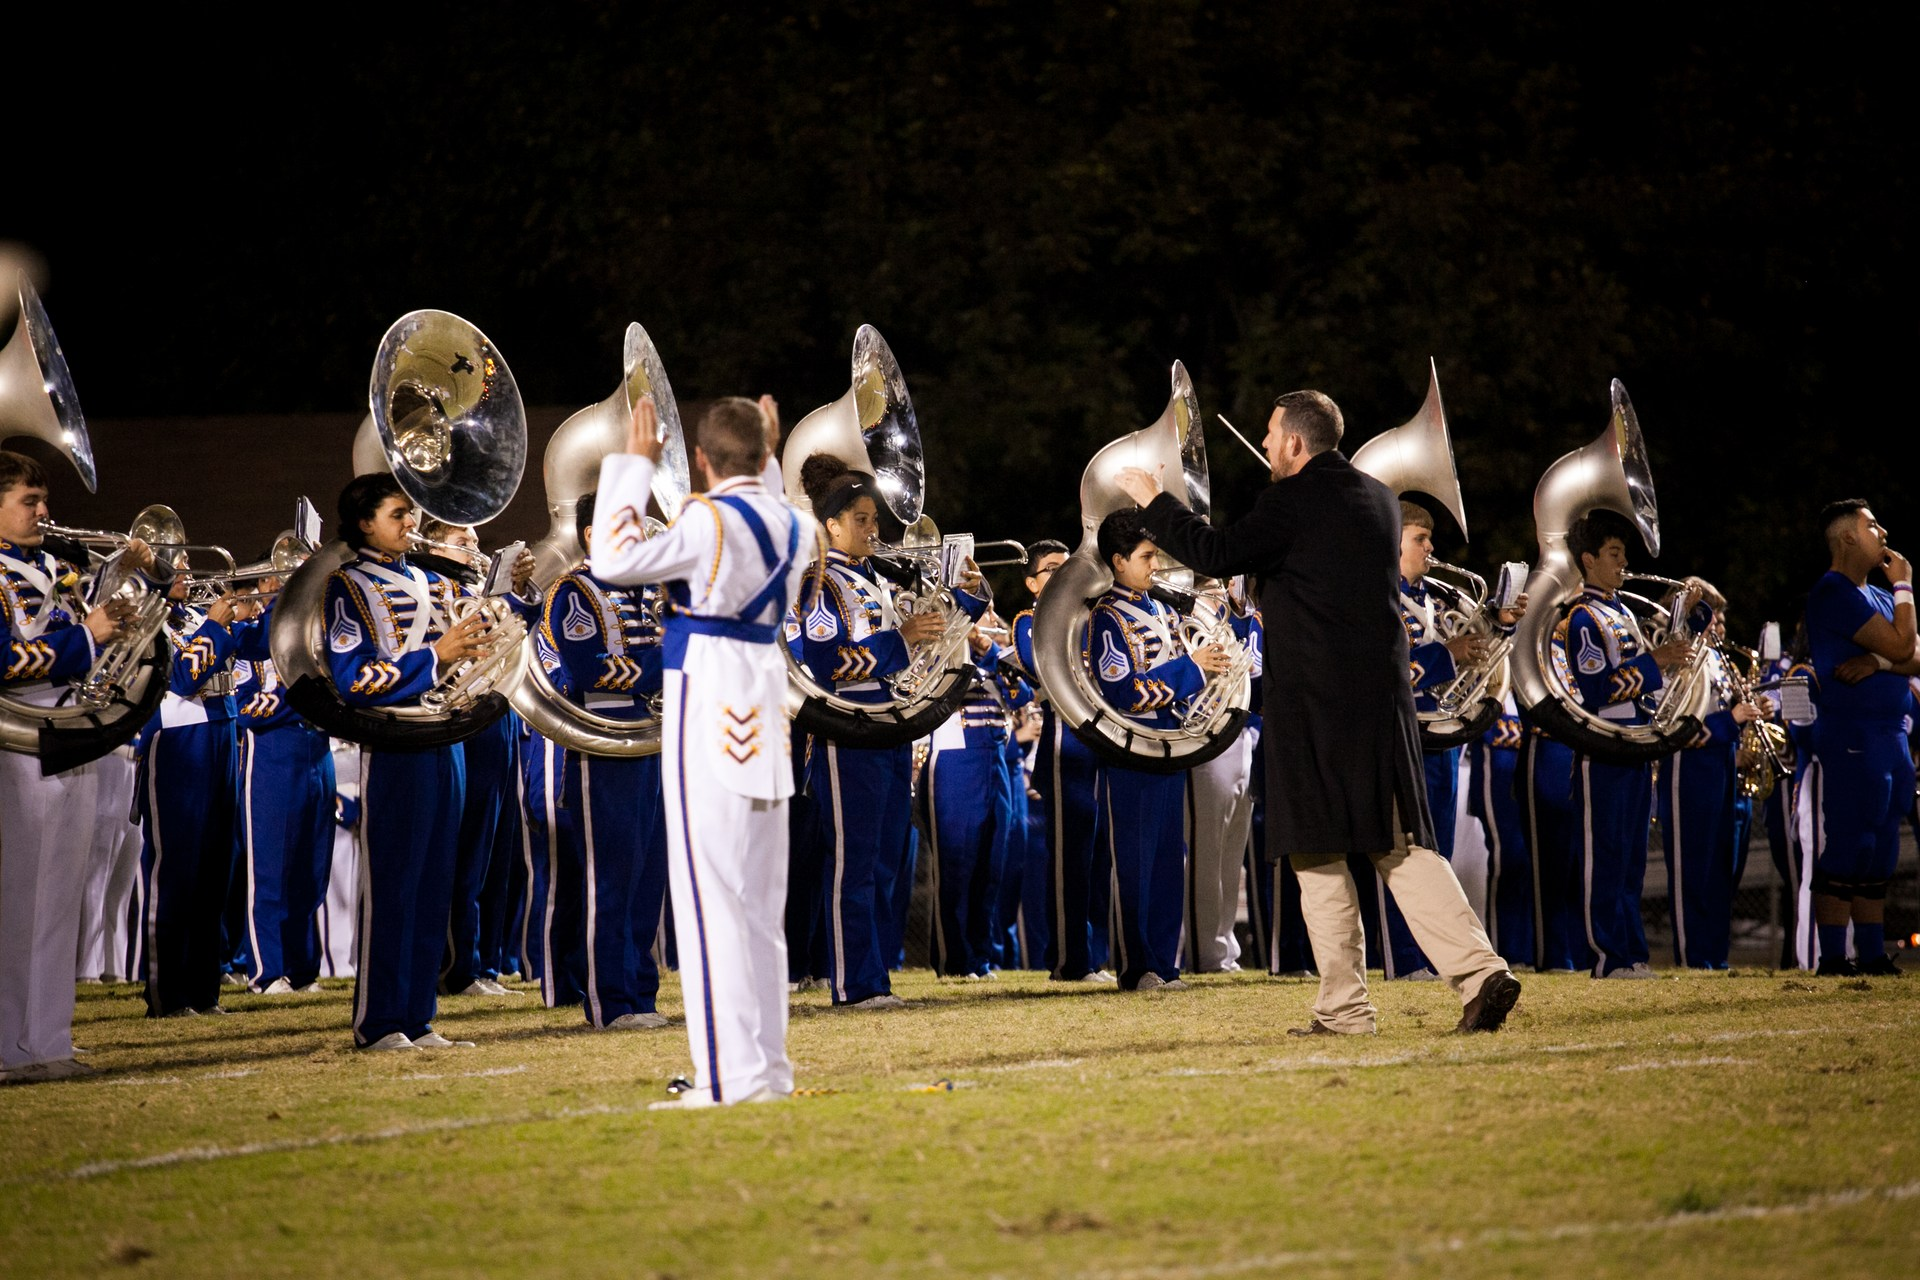 band before a performance on the field